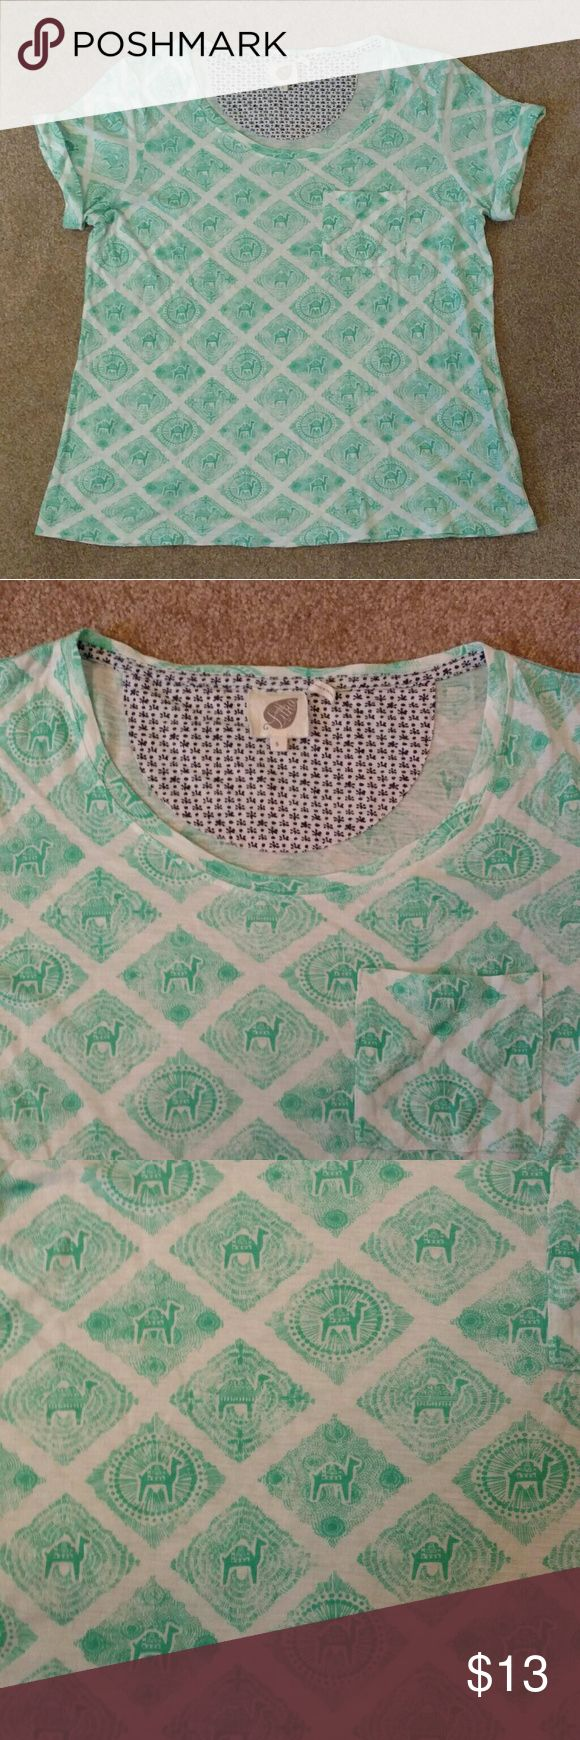 Anthropologie Camel Tee This cotton modal tee has a lightweight, easy fit that's perfect for a sunny day. A front pocket and roll cuff sleeve add cute detailing to this casual tee. Originally purchased from Anthropologie, tag reads Luka. Excellent condition - No snags, holes or stains. Anthropologie Tops Tees - Short Sleeve